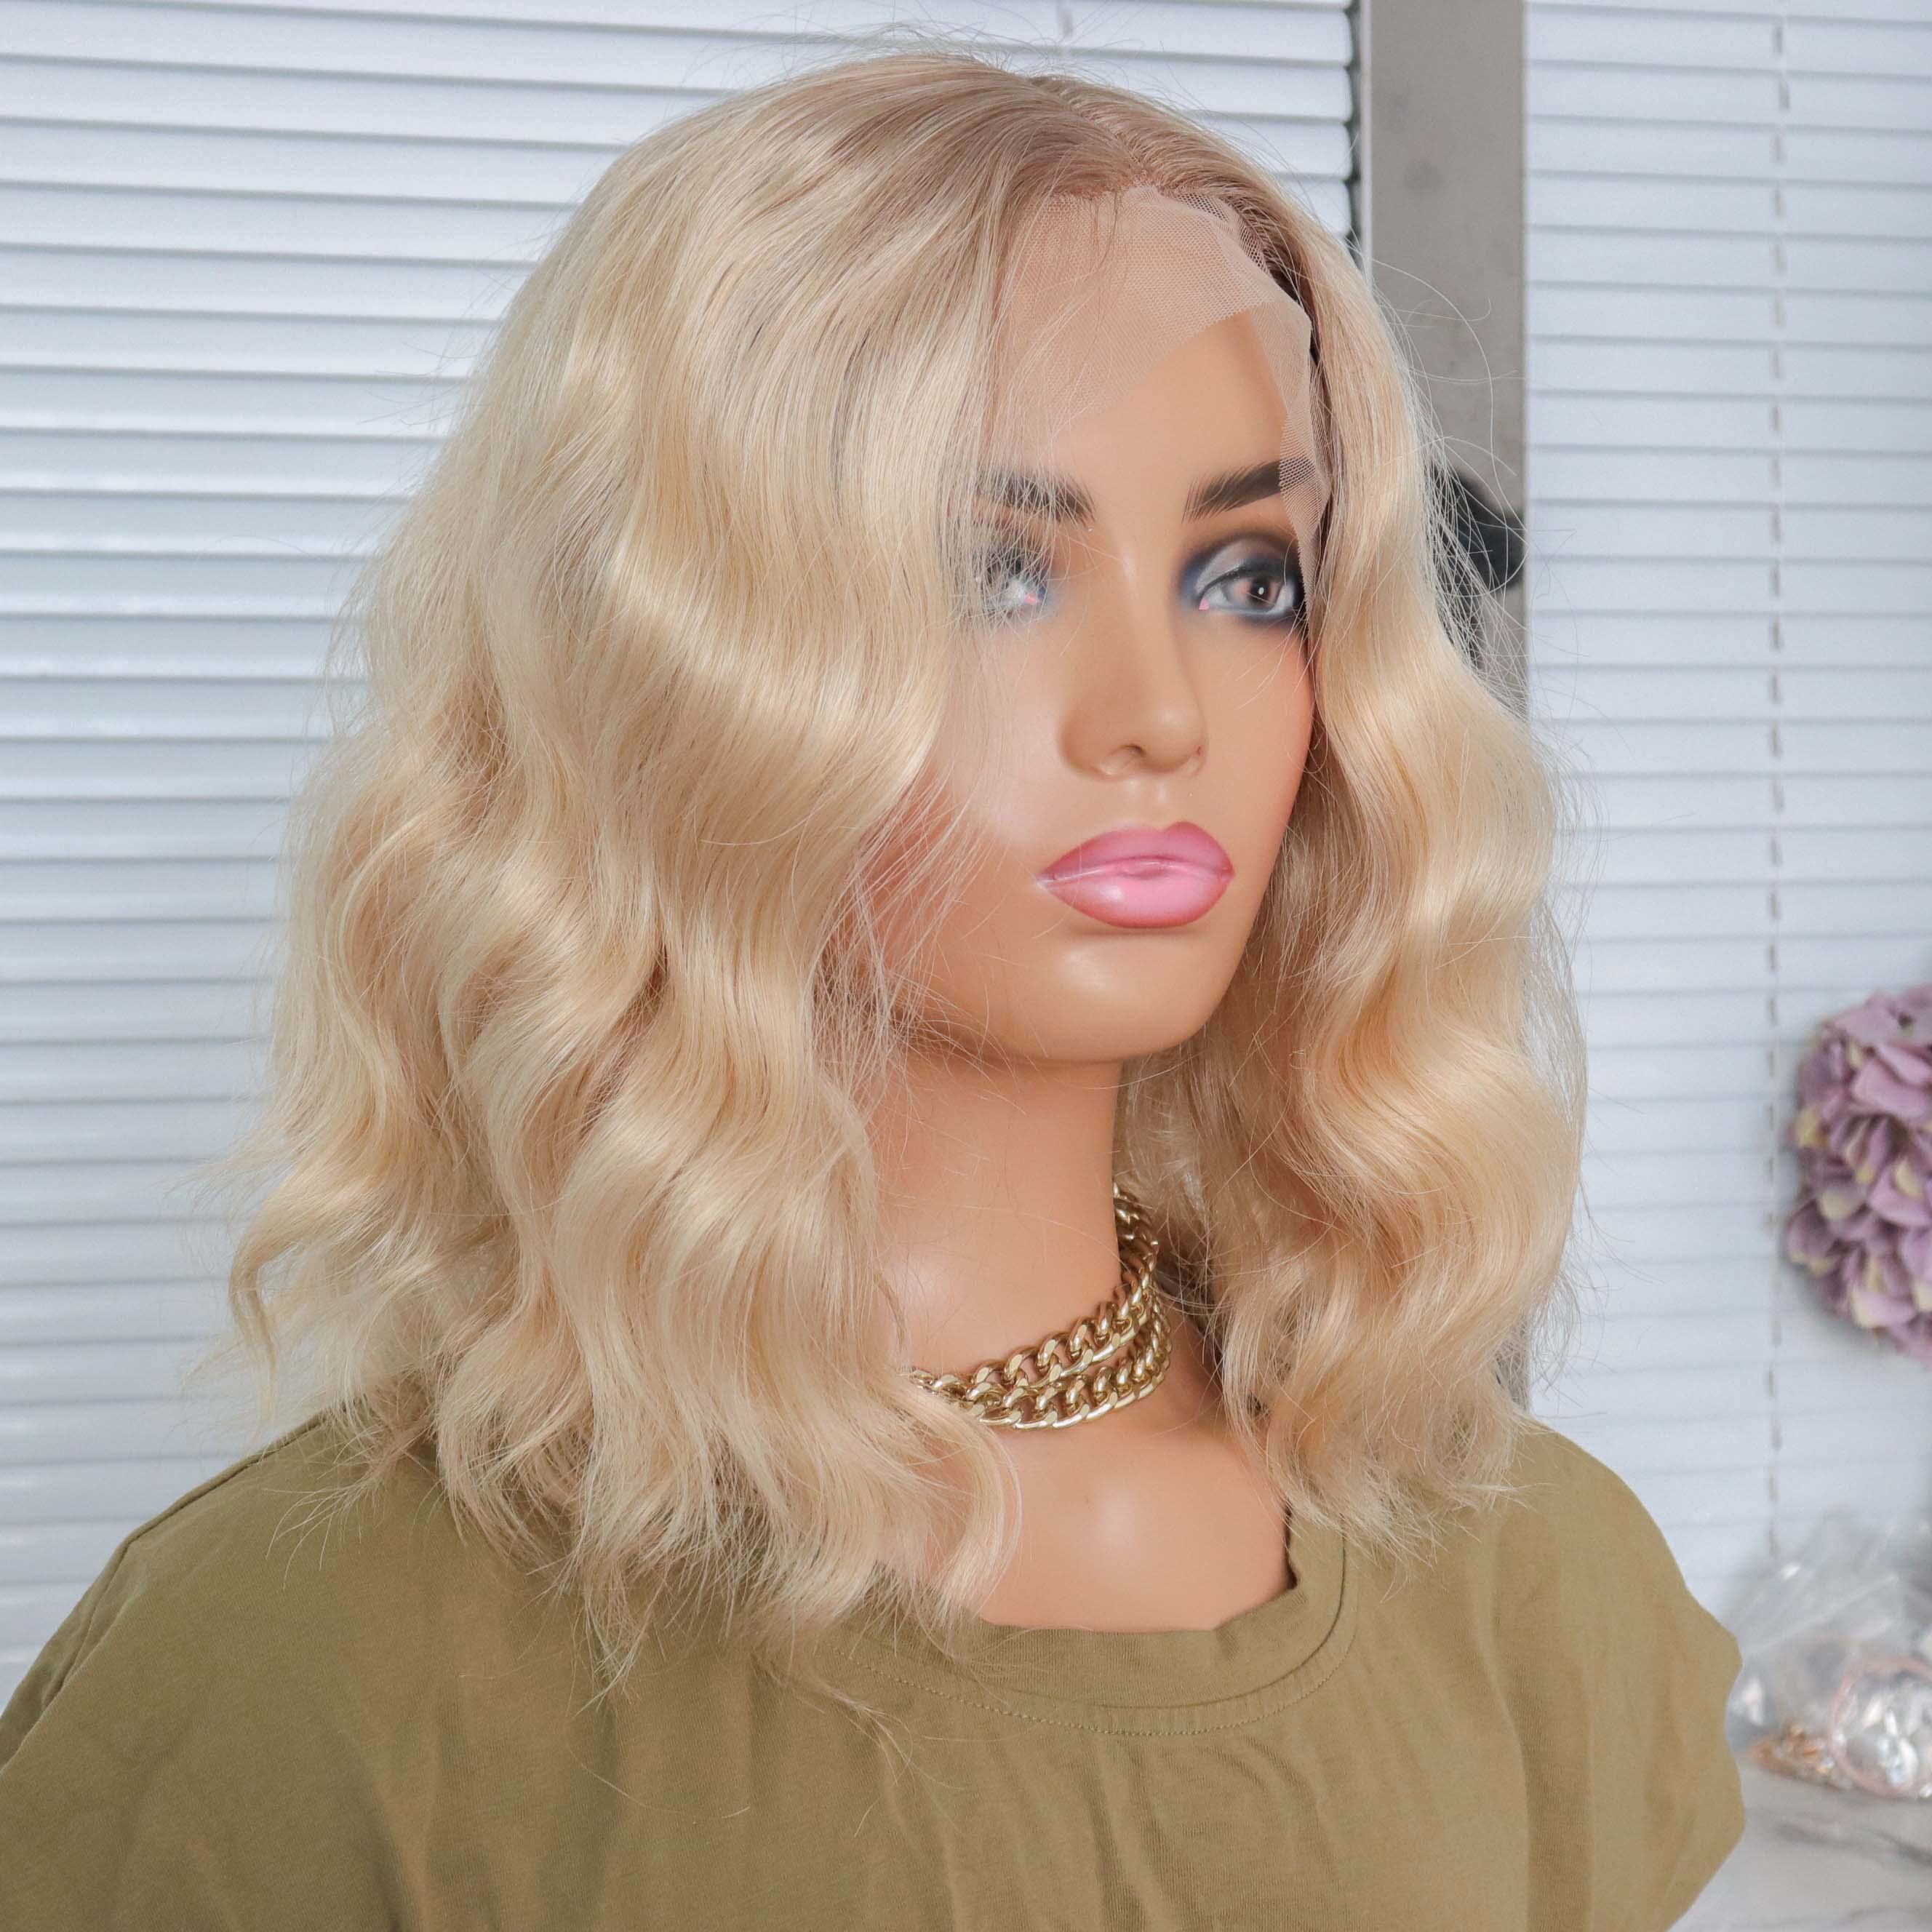 Wavy Light Brown Roots Blonde Synthetic Wigs 613 Color Short Water Wave Bob T Part Wigs For Black Women Middle Part Daily Use